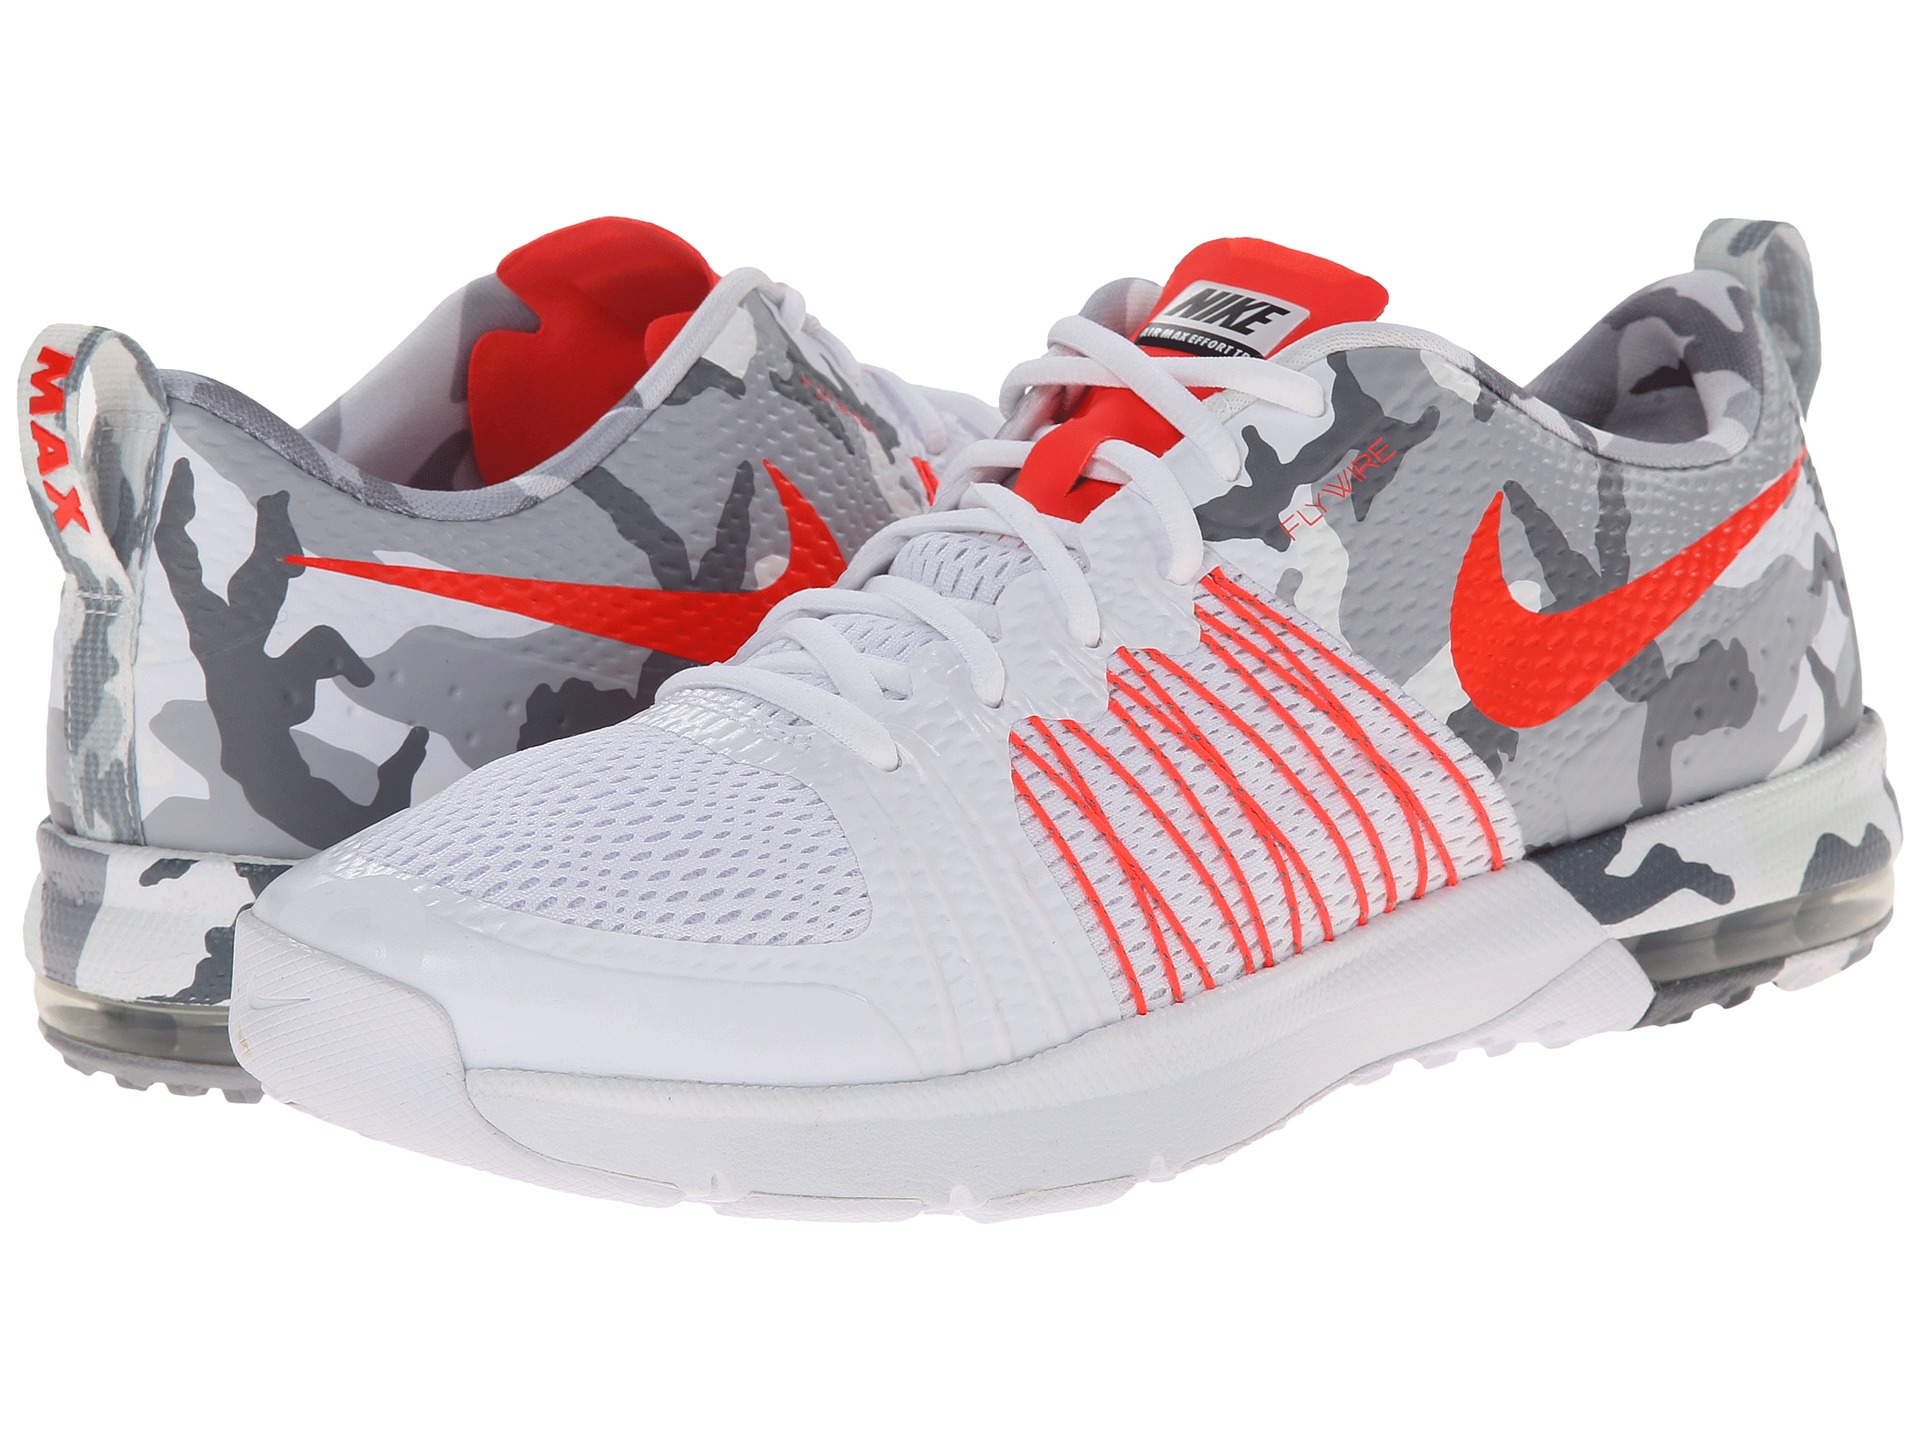 ... shop lyst nike air max effort tr in white for men 6b0be abaa0 62c56b048